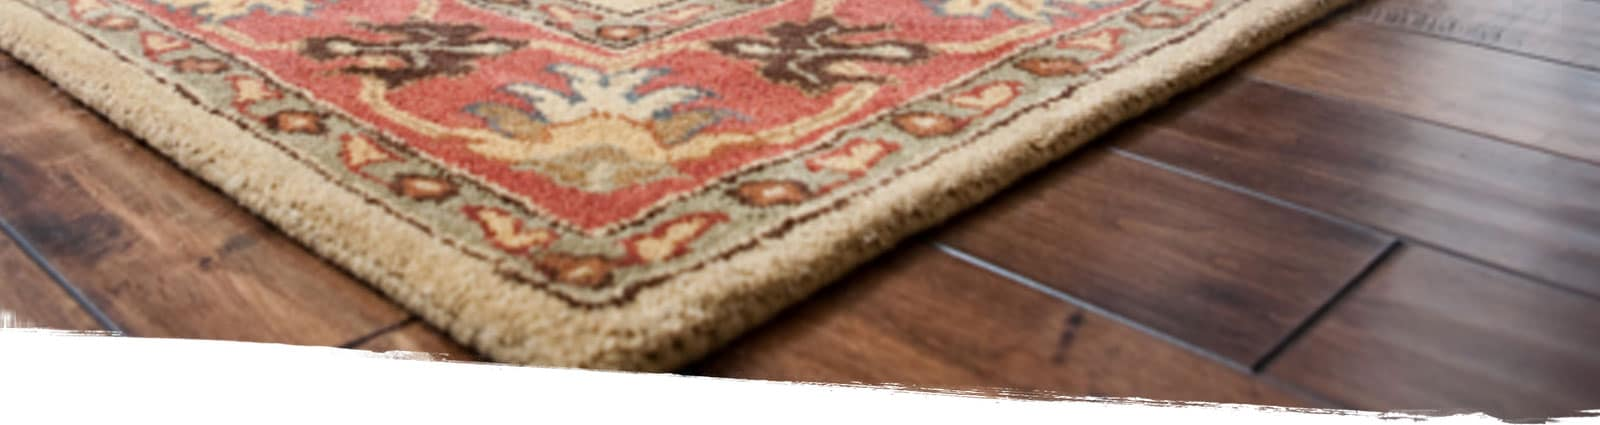 Professional Area Rug Cleaning Services Ottawa Clean Freaks